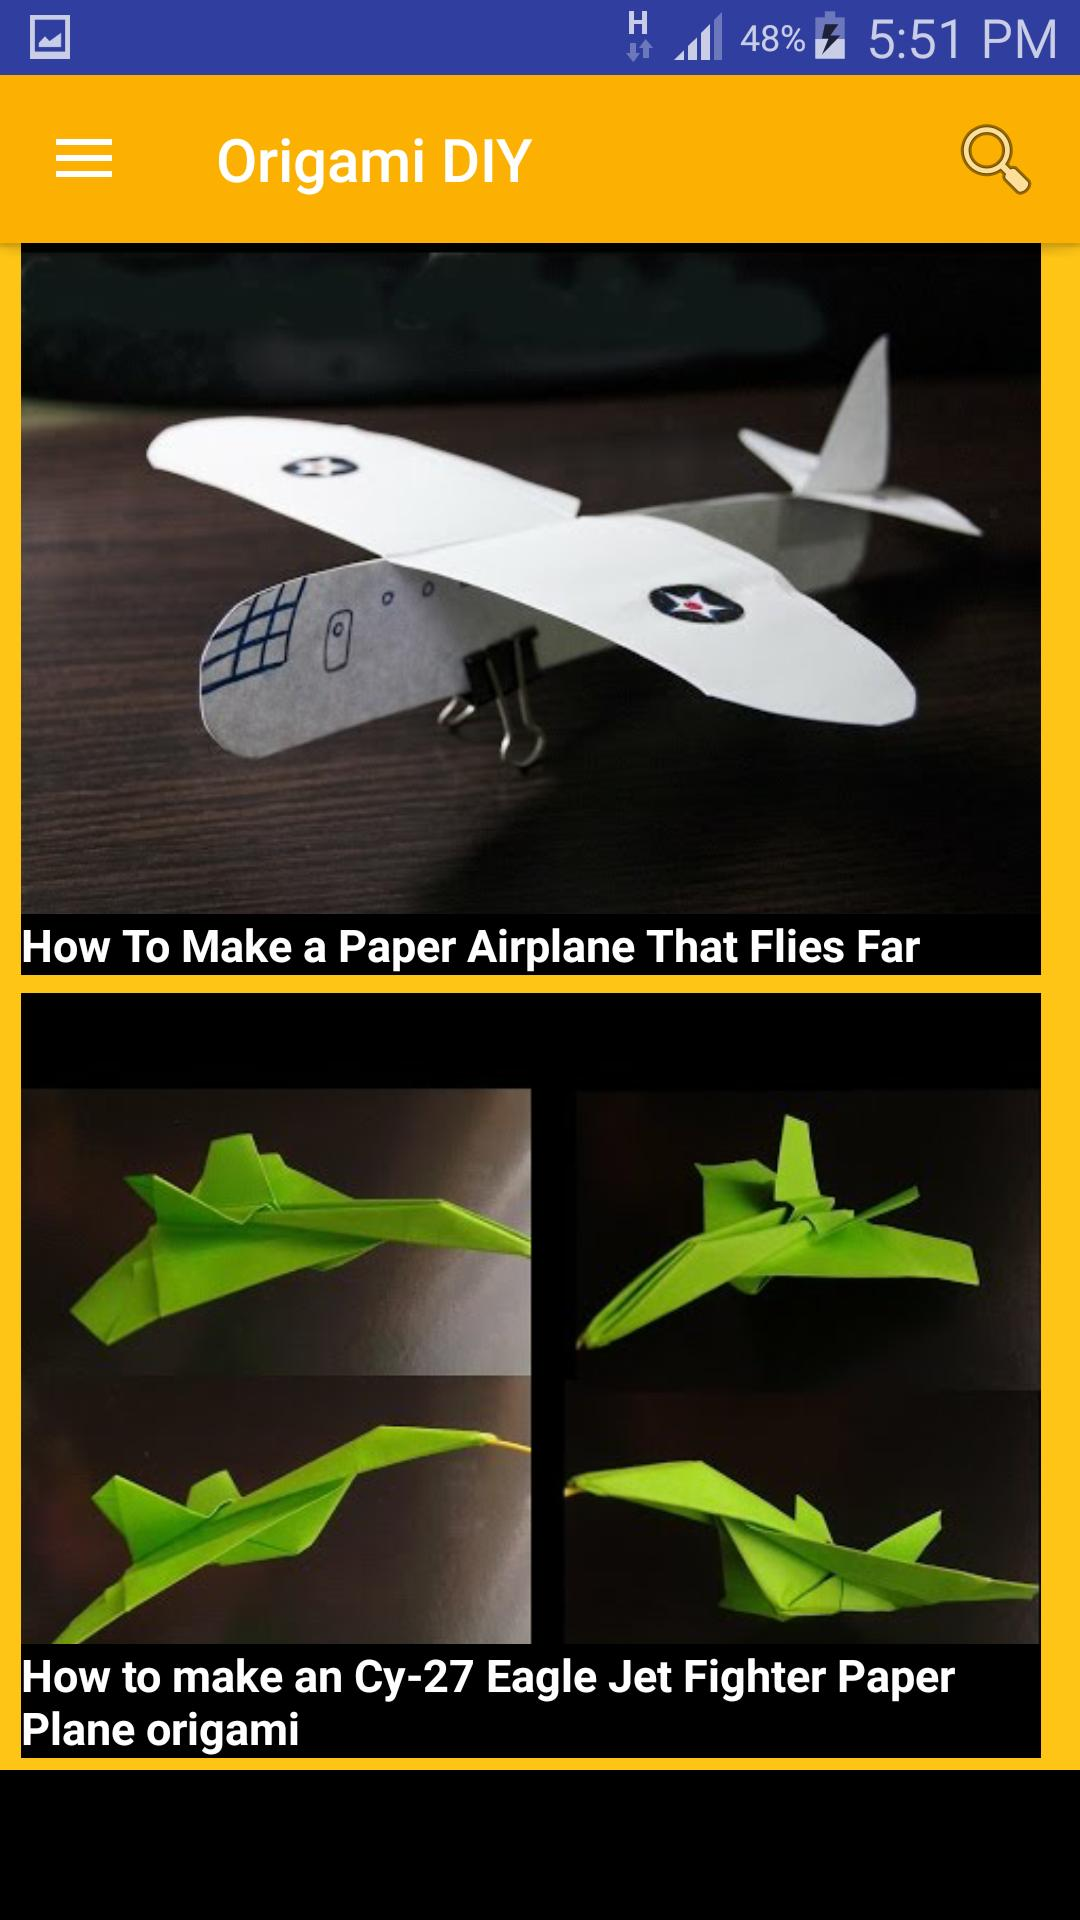 Best Paper Origami 2017 poster